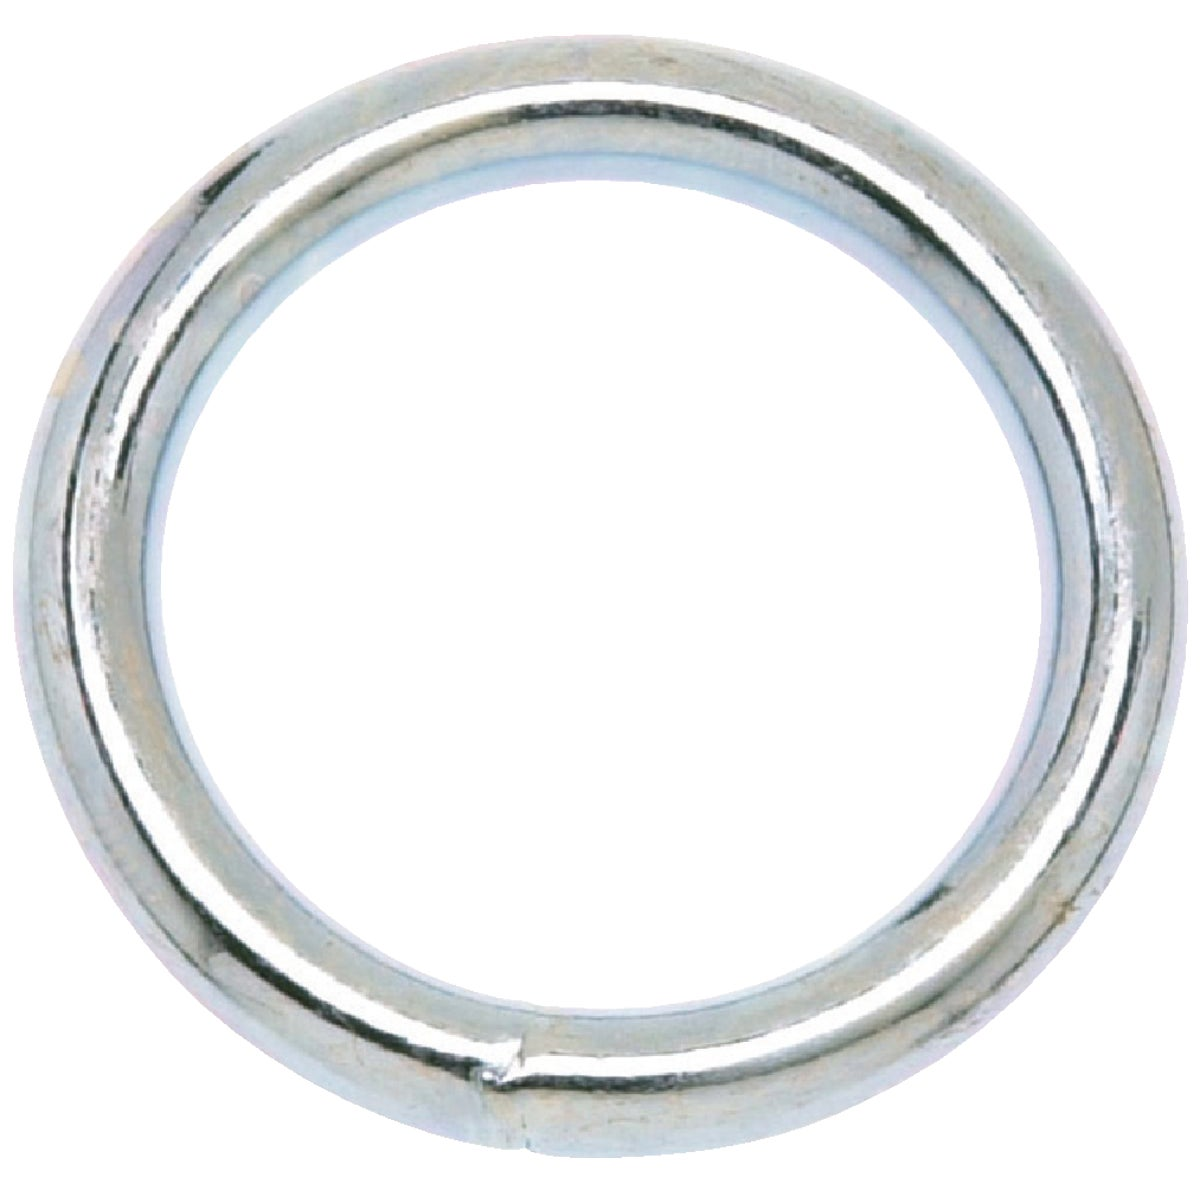 "1-1/4"" #7 ROUND RING - T7665032 by Cooper Campbell Apex"